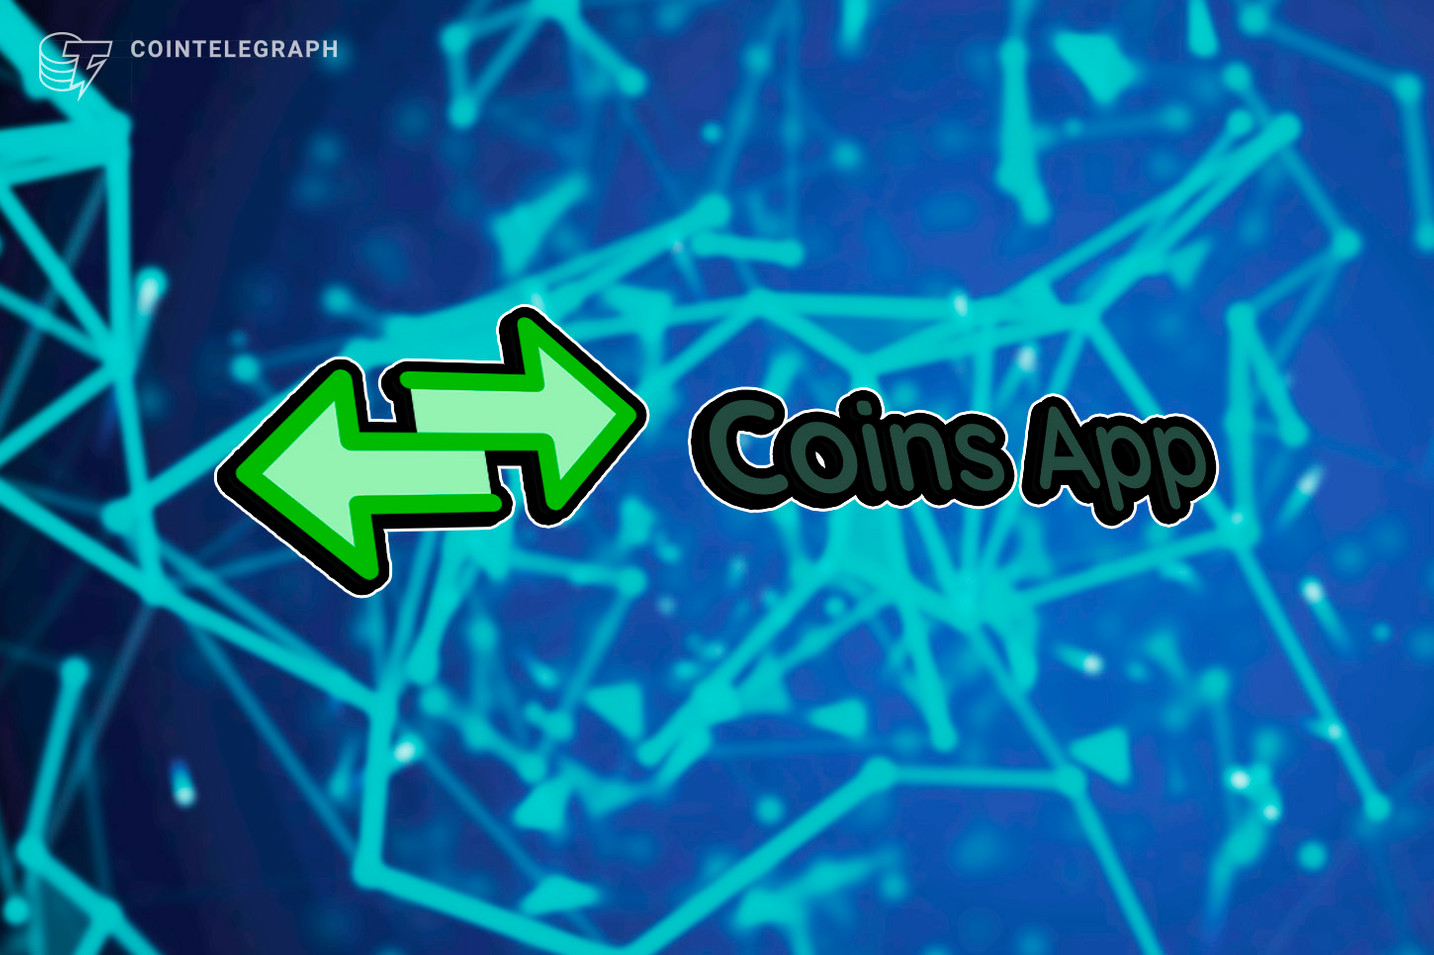 Dan Holdings Launches Coins App, a Crypto Social Payments Application